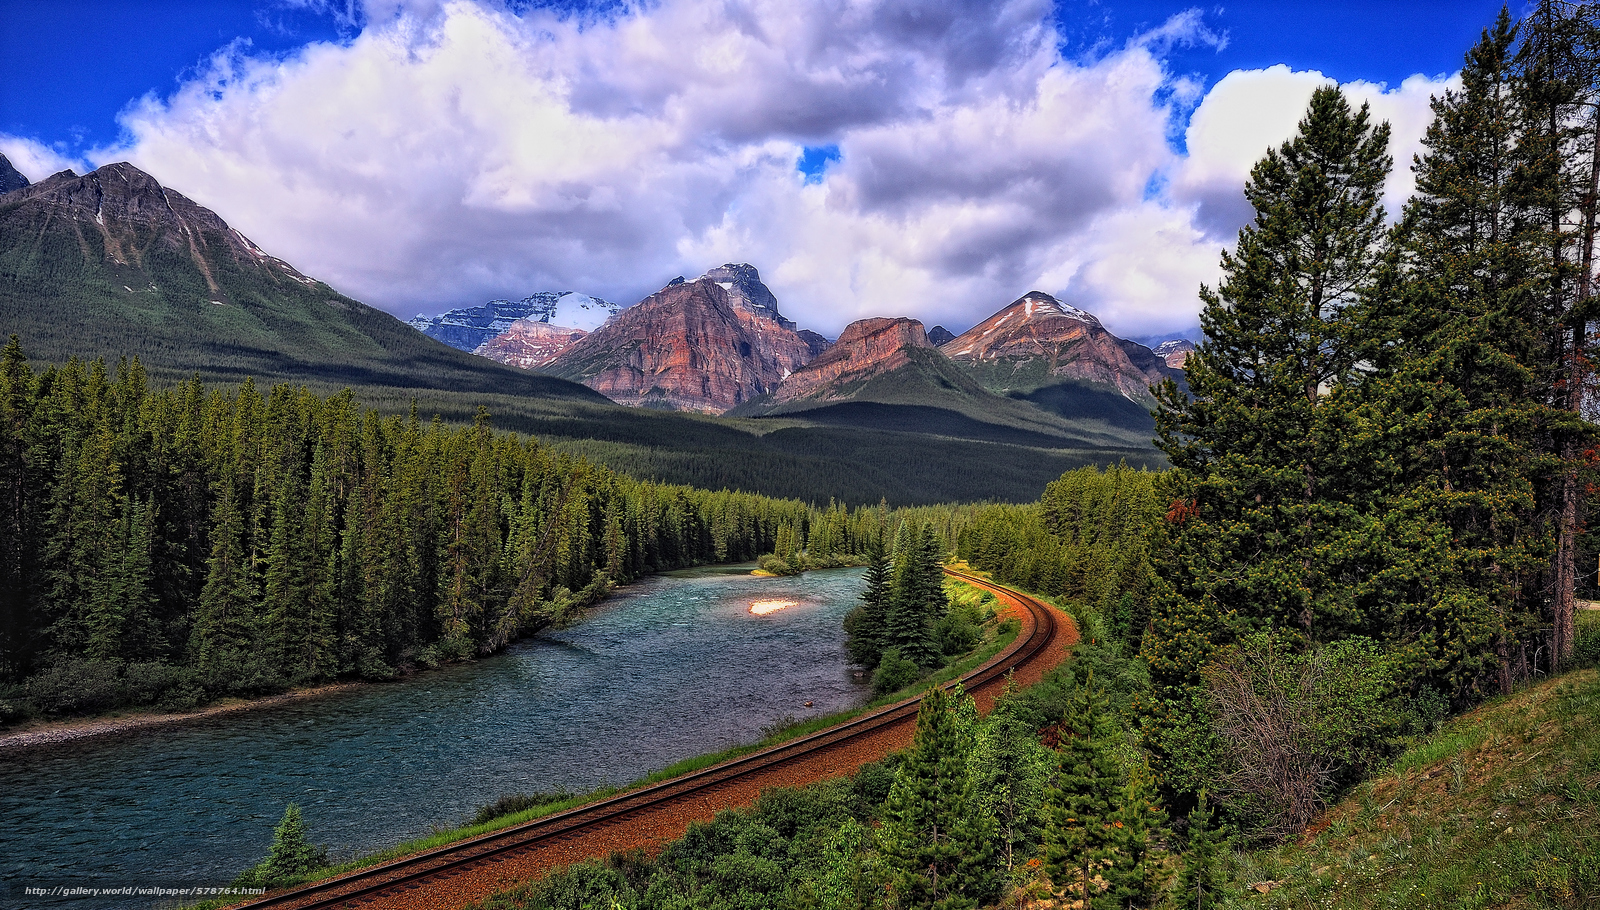 [Obrazek: 578764_mountains_trees_a-river-and-train...on.com.jpg]